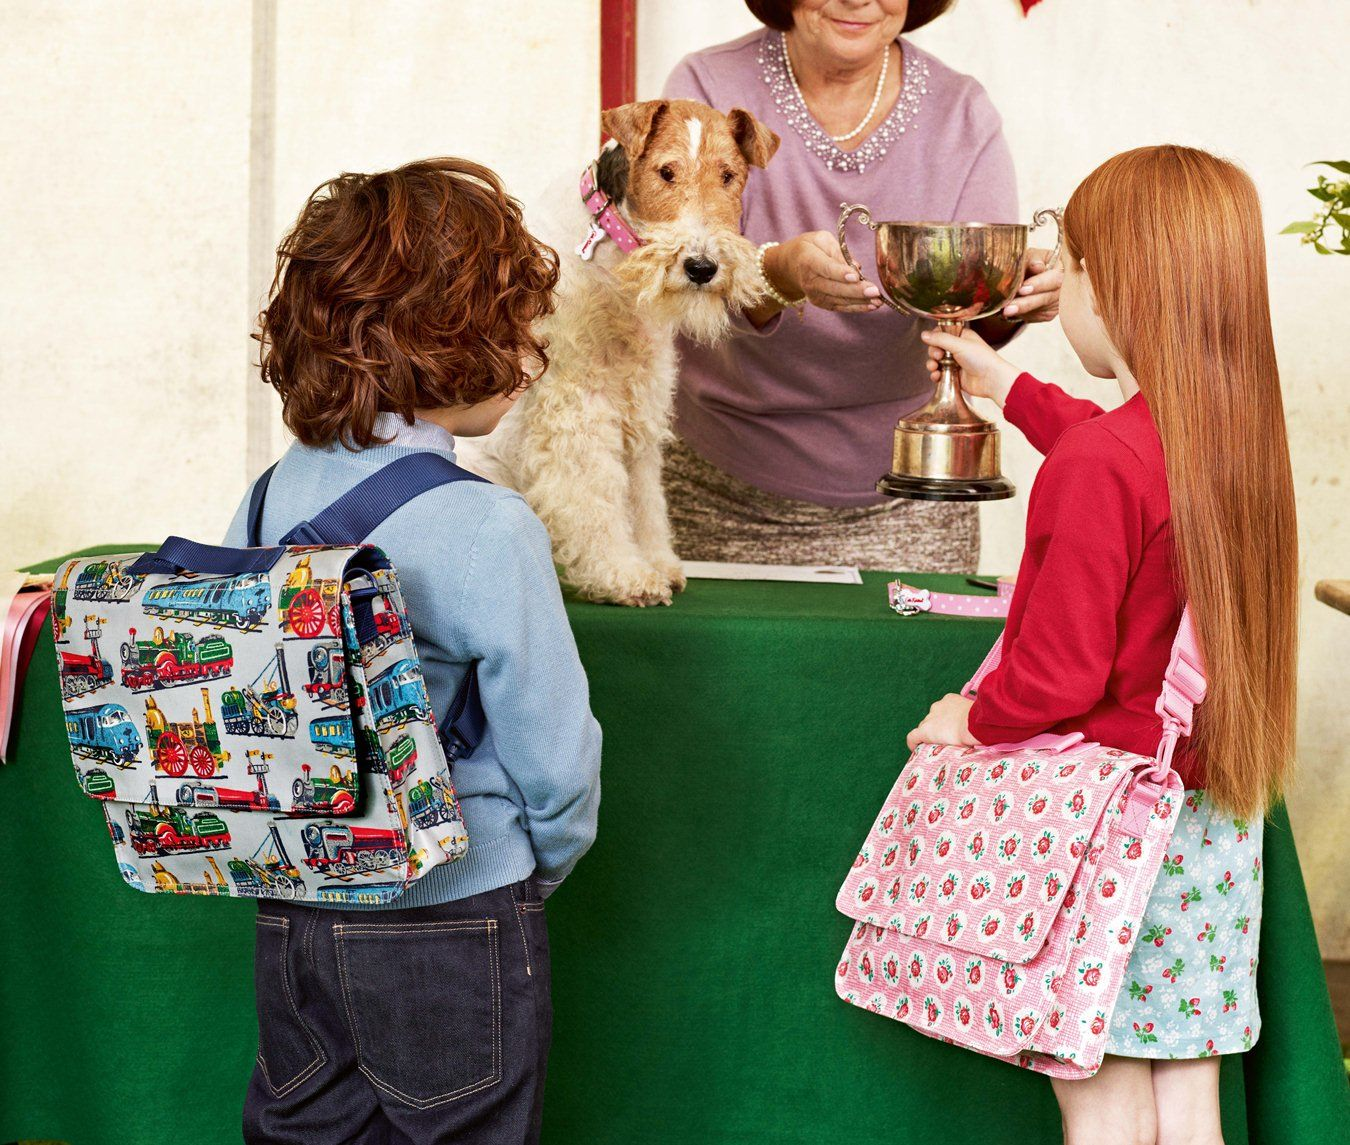 Trains grey school satchel | Lattice rose pink school satchel. From Cath Kidston's BEST IN SHOW: Spring 2013 #spring #fashion #kids #bags #dogs